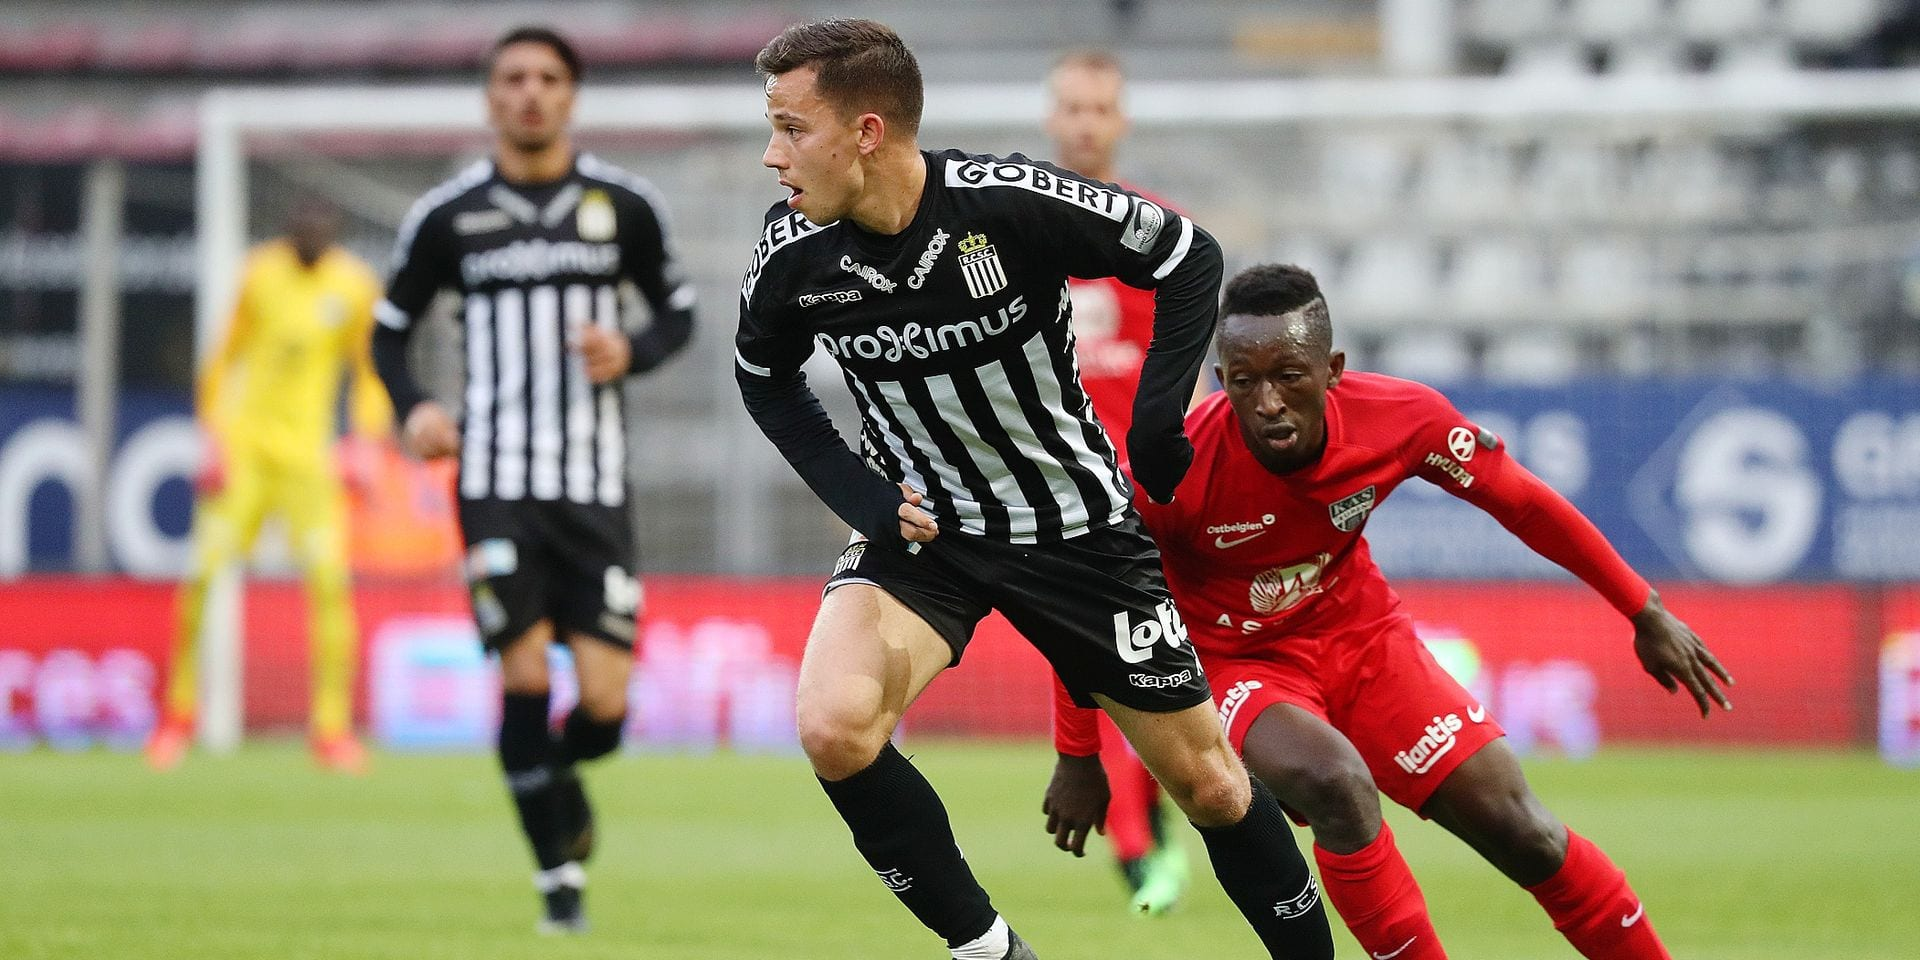 Charleroi's Gaetan Hendrickx and Eupen's Sulayman Marreh fight for the ball during a soccer game between Sporting Charleroi and KAS Eupen, Saturday 18 May 2019 in Charleroi, on the tenth and last day of the Play-off 2B of the 'Jupiler Pro League' Belgian soccer championship. BELGA PHOTO VIRGINIE LEFOUR